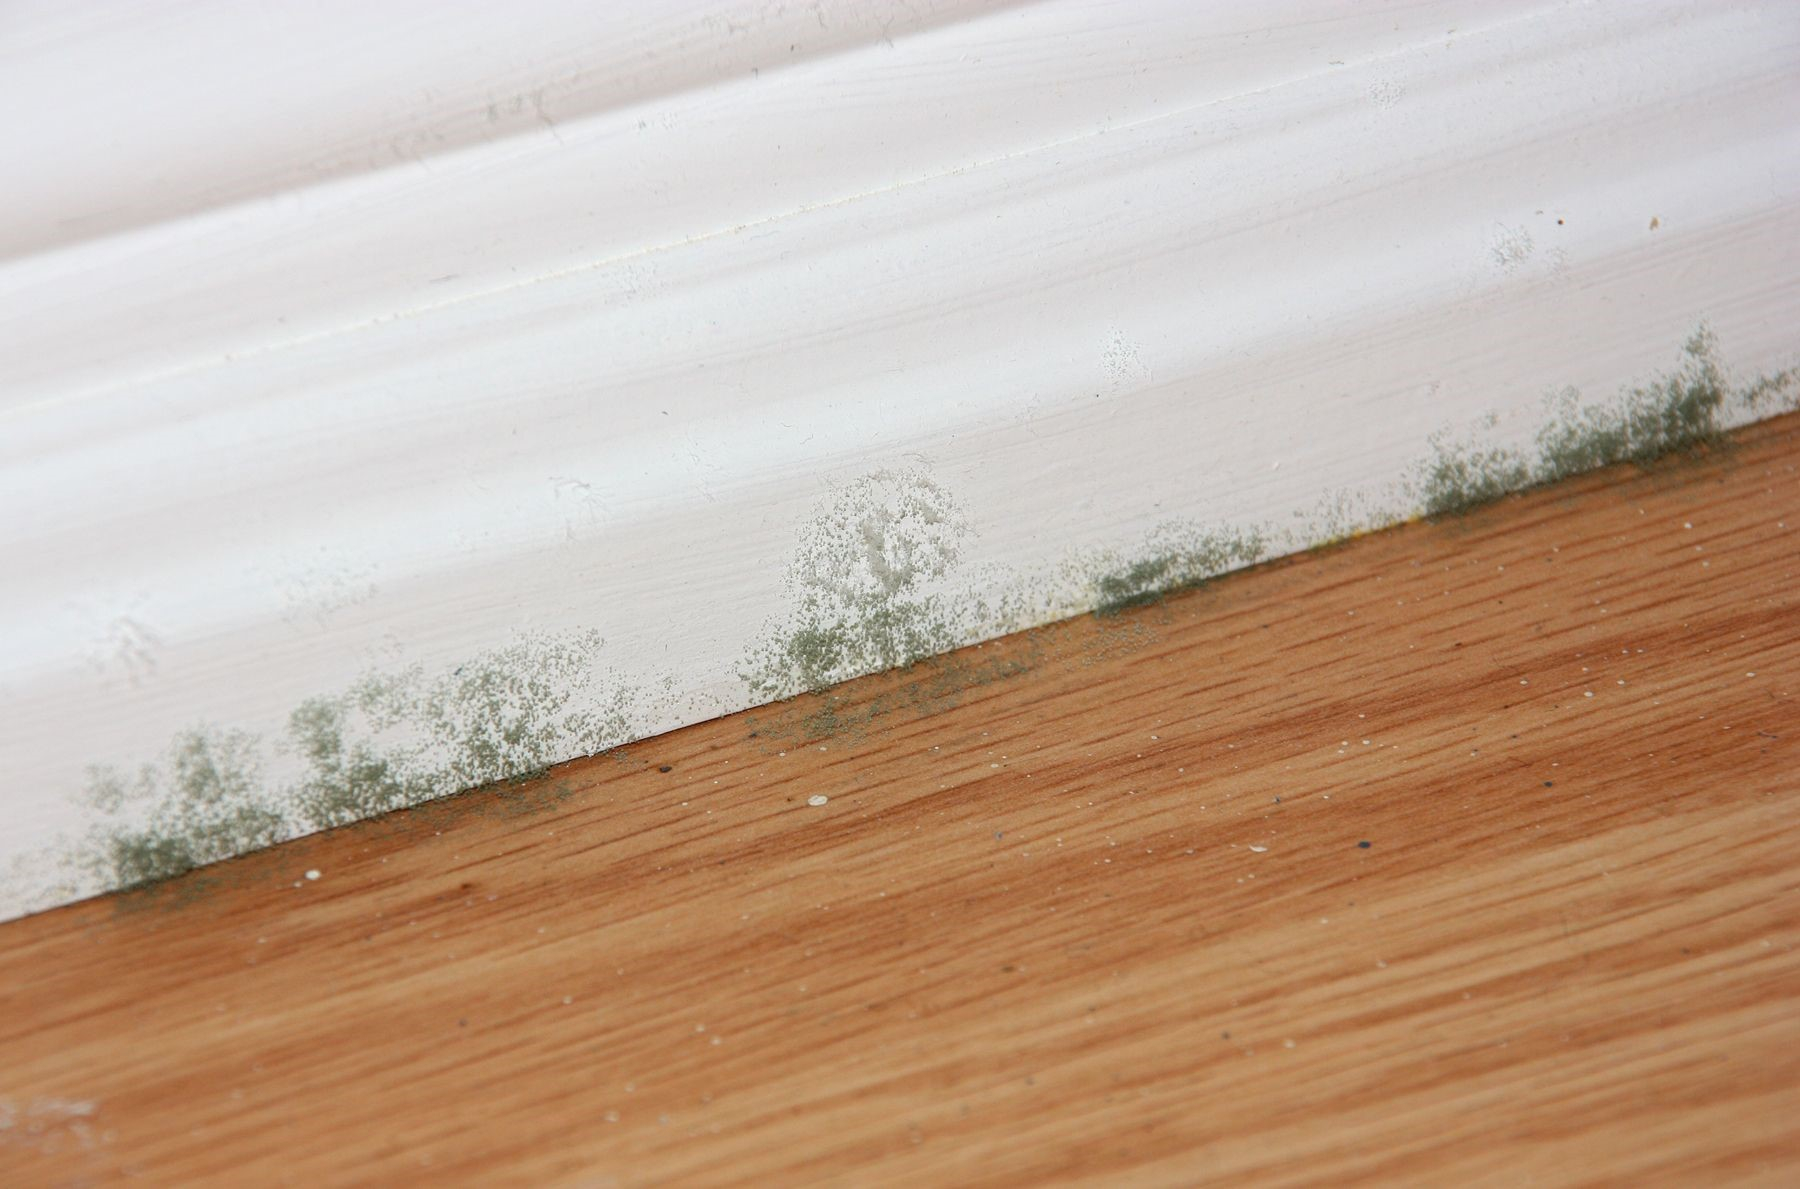 Signs Of Mold Under Hardwood Floors Pertaining To Heed The Warning